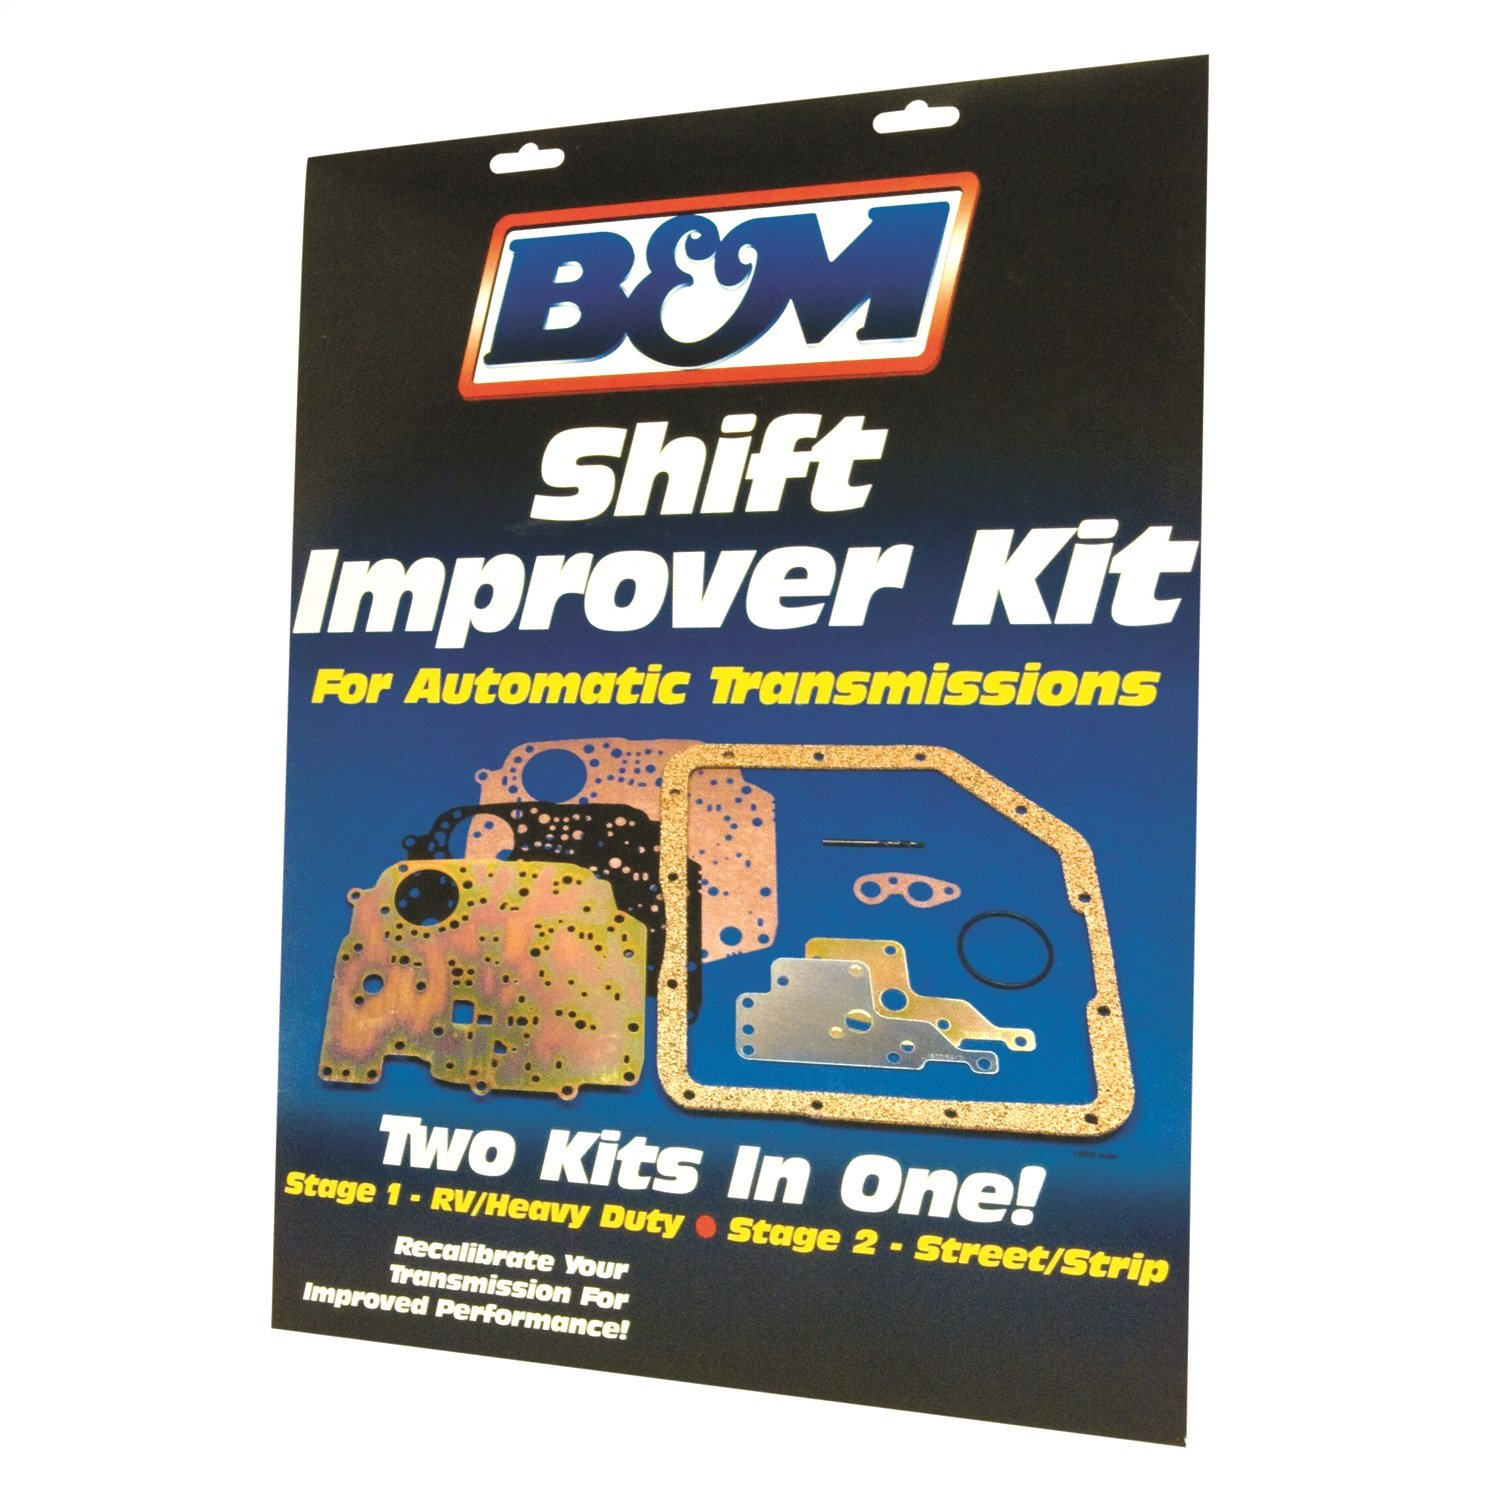 B&M 40262 Shift Improver Kit for Automatic Transmissions by B&M